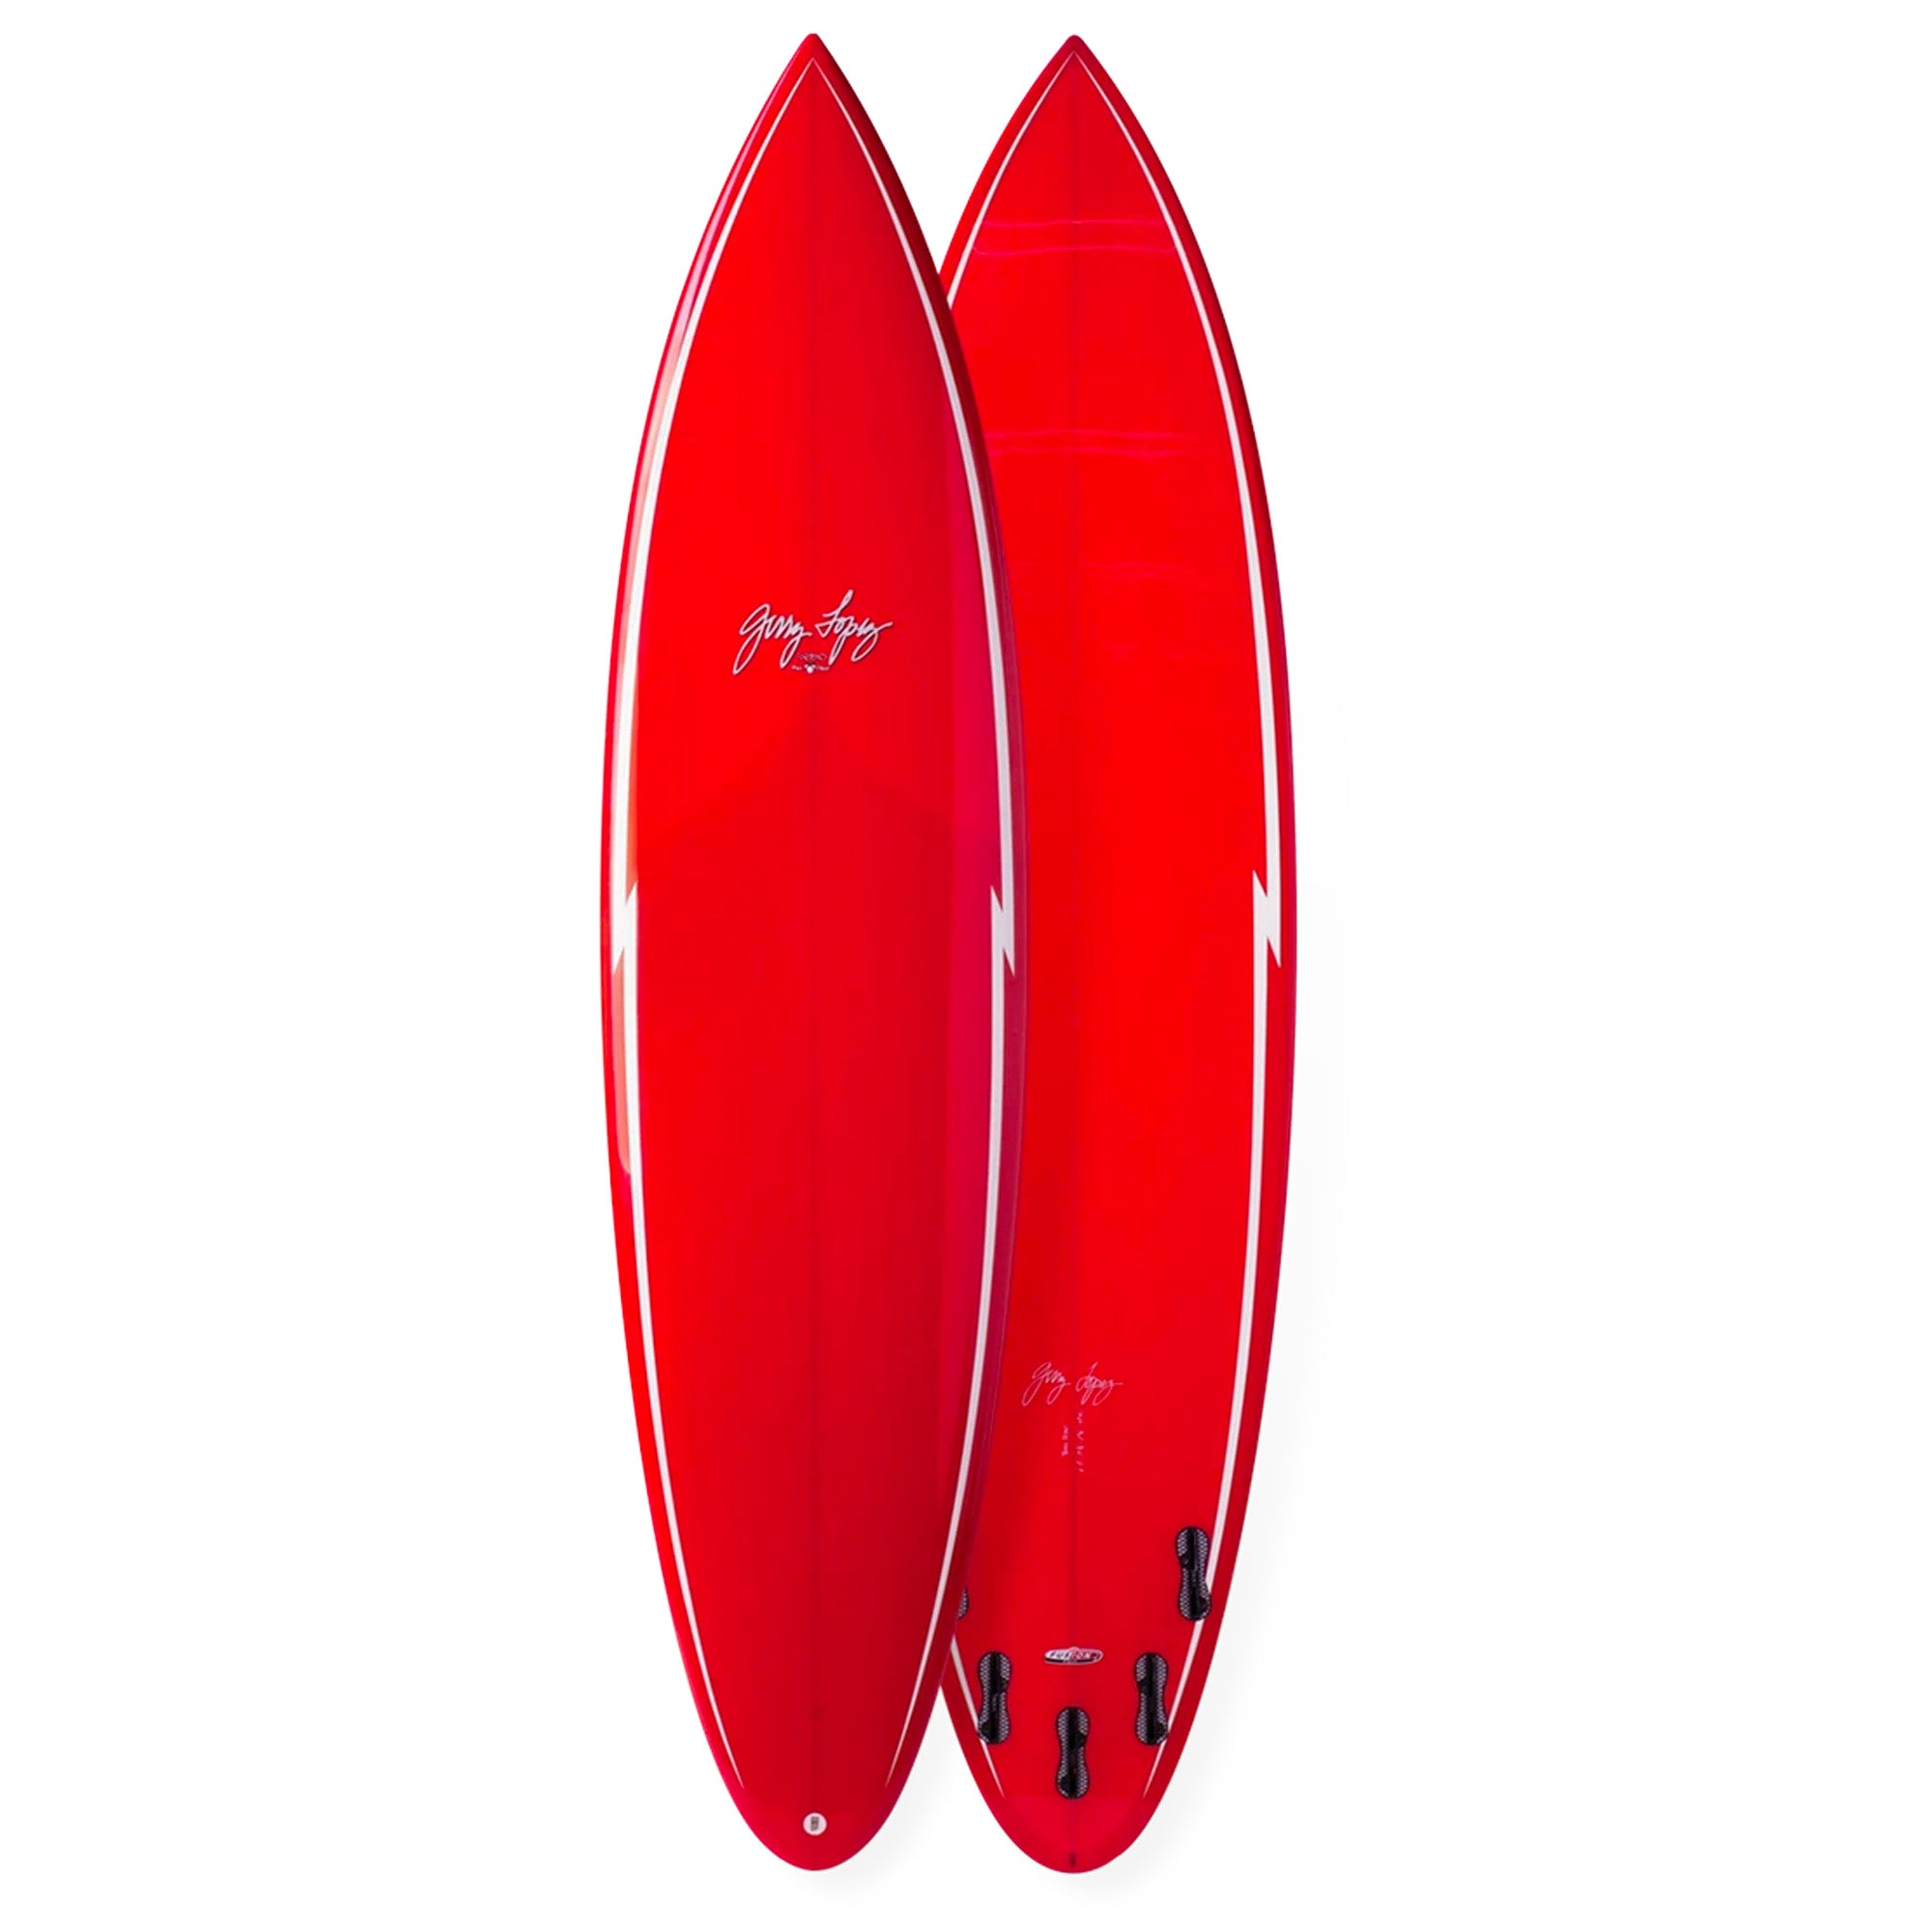 Gerry Lopez Pocket Rocket Surfboard